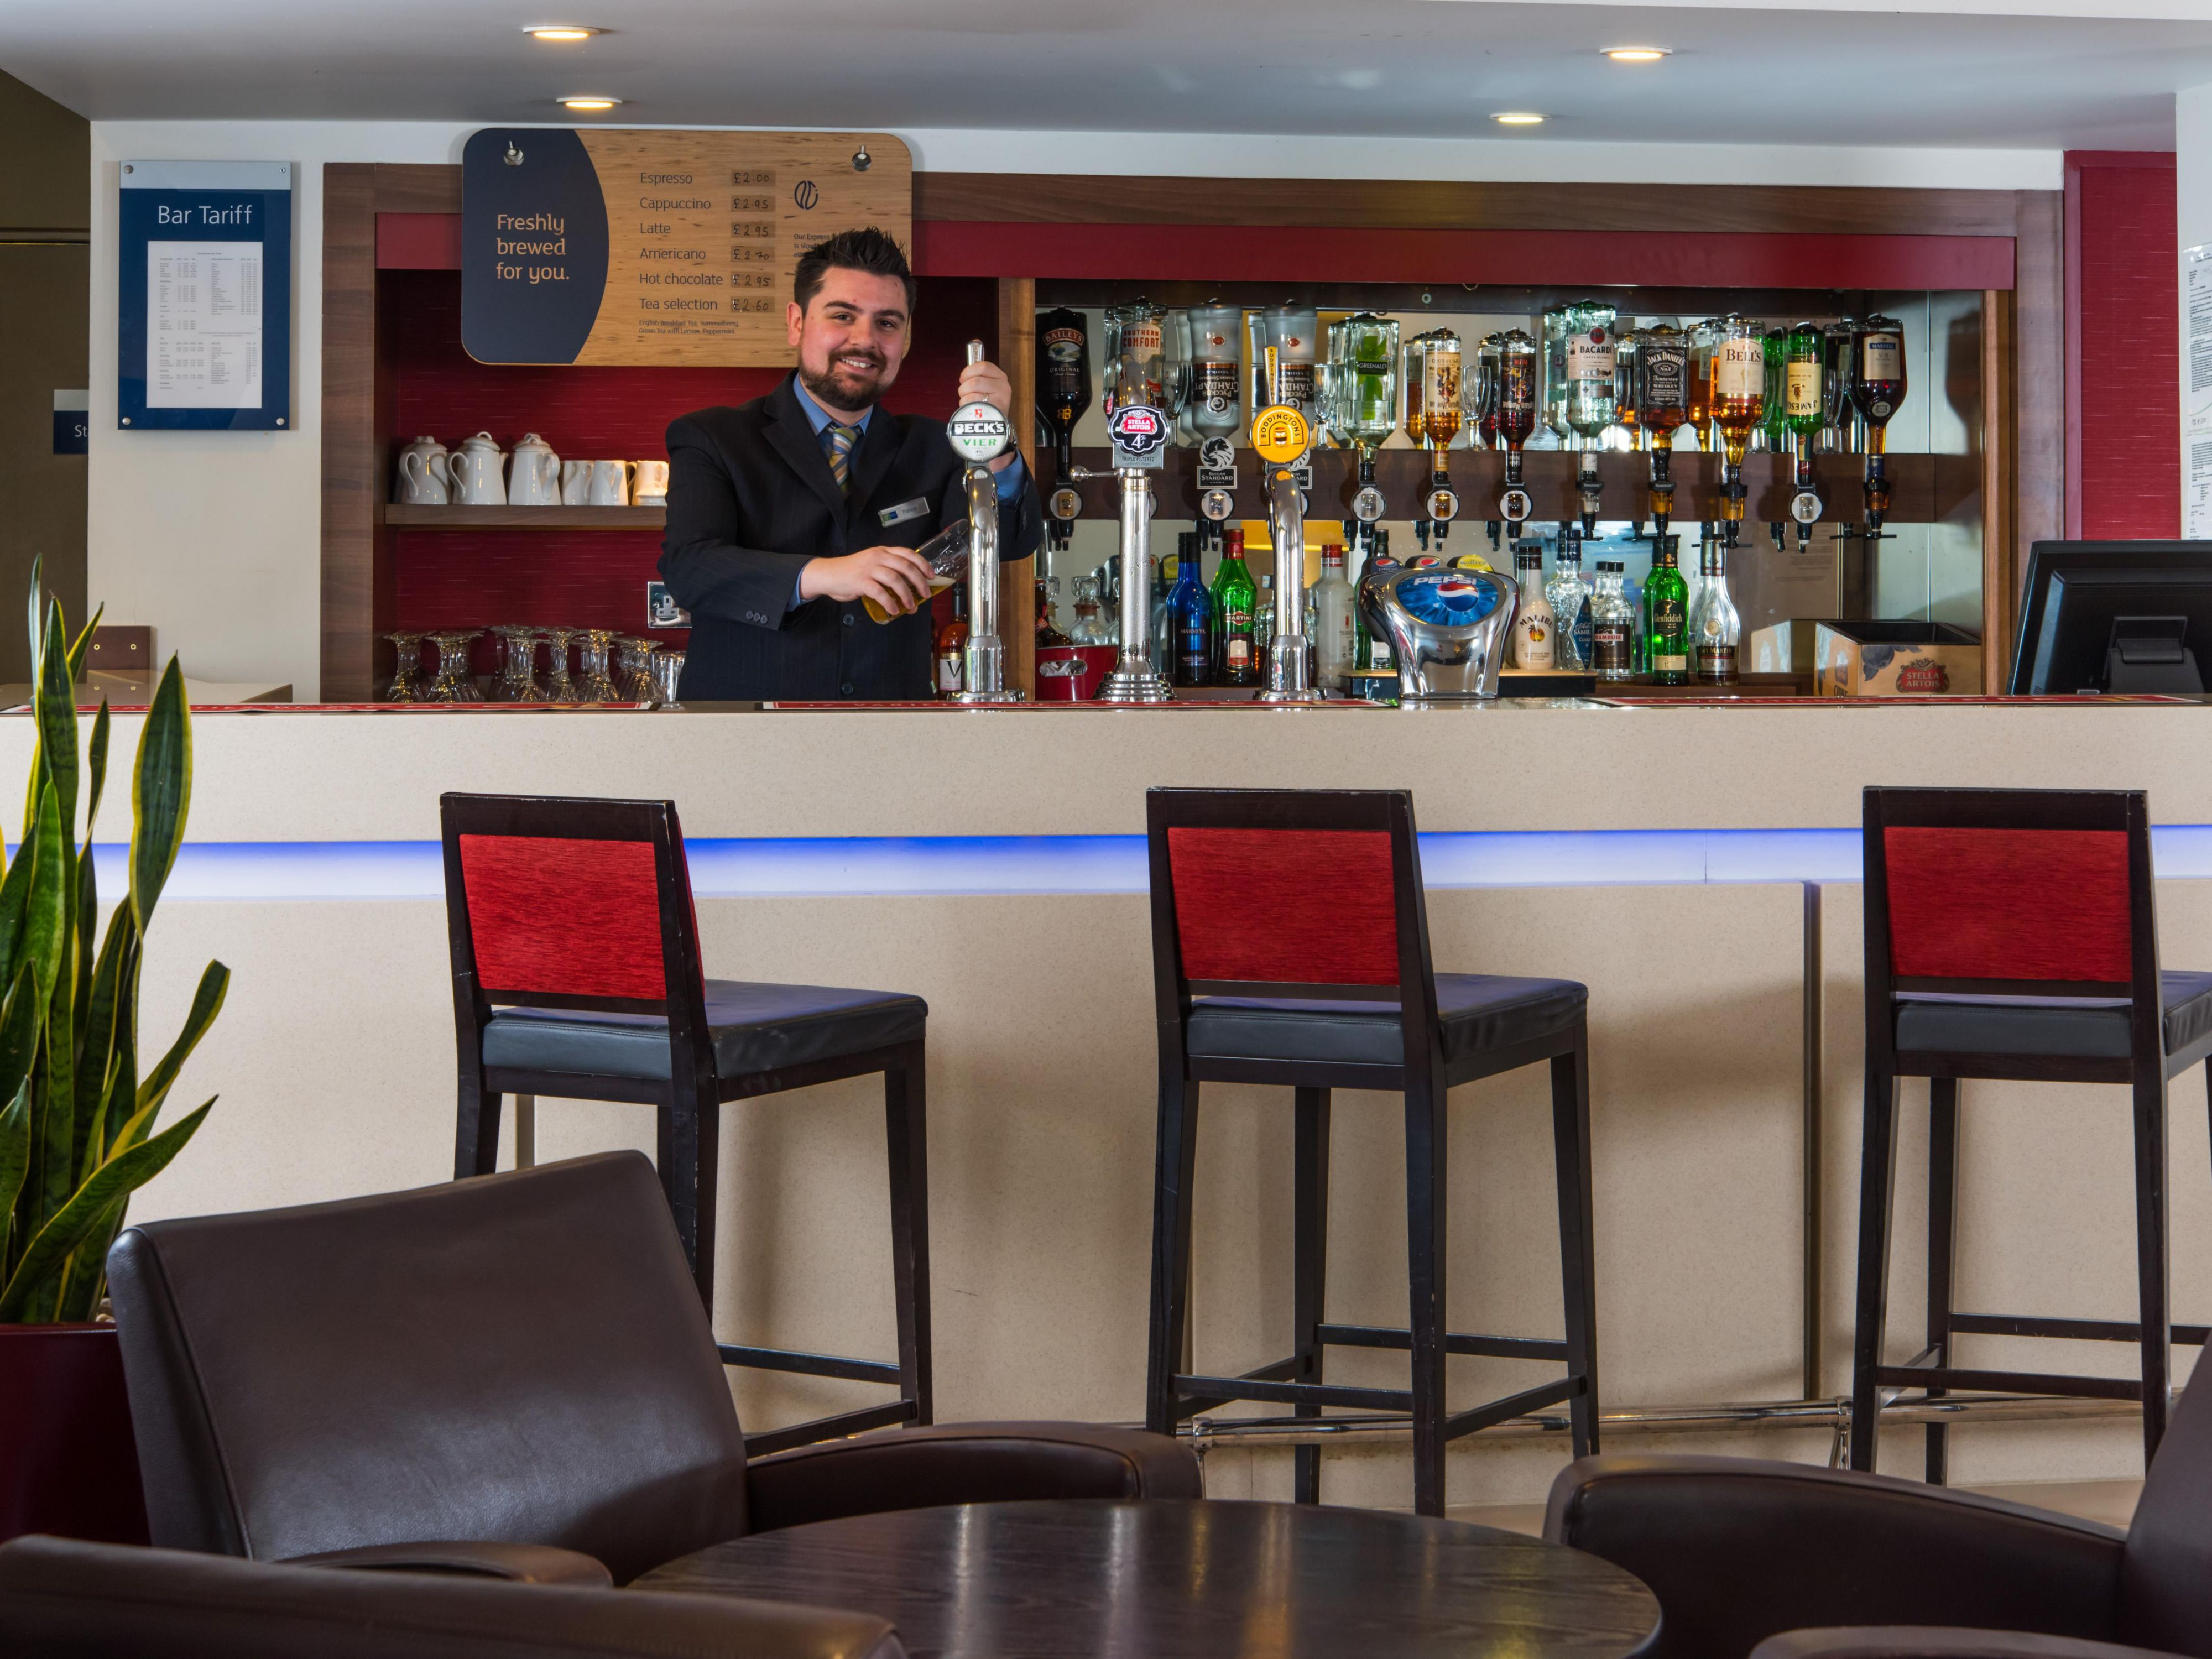 Fancy a tipple? Our lounge bar is open throughout the day. Enjoy!